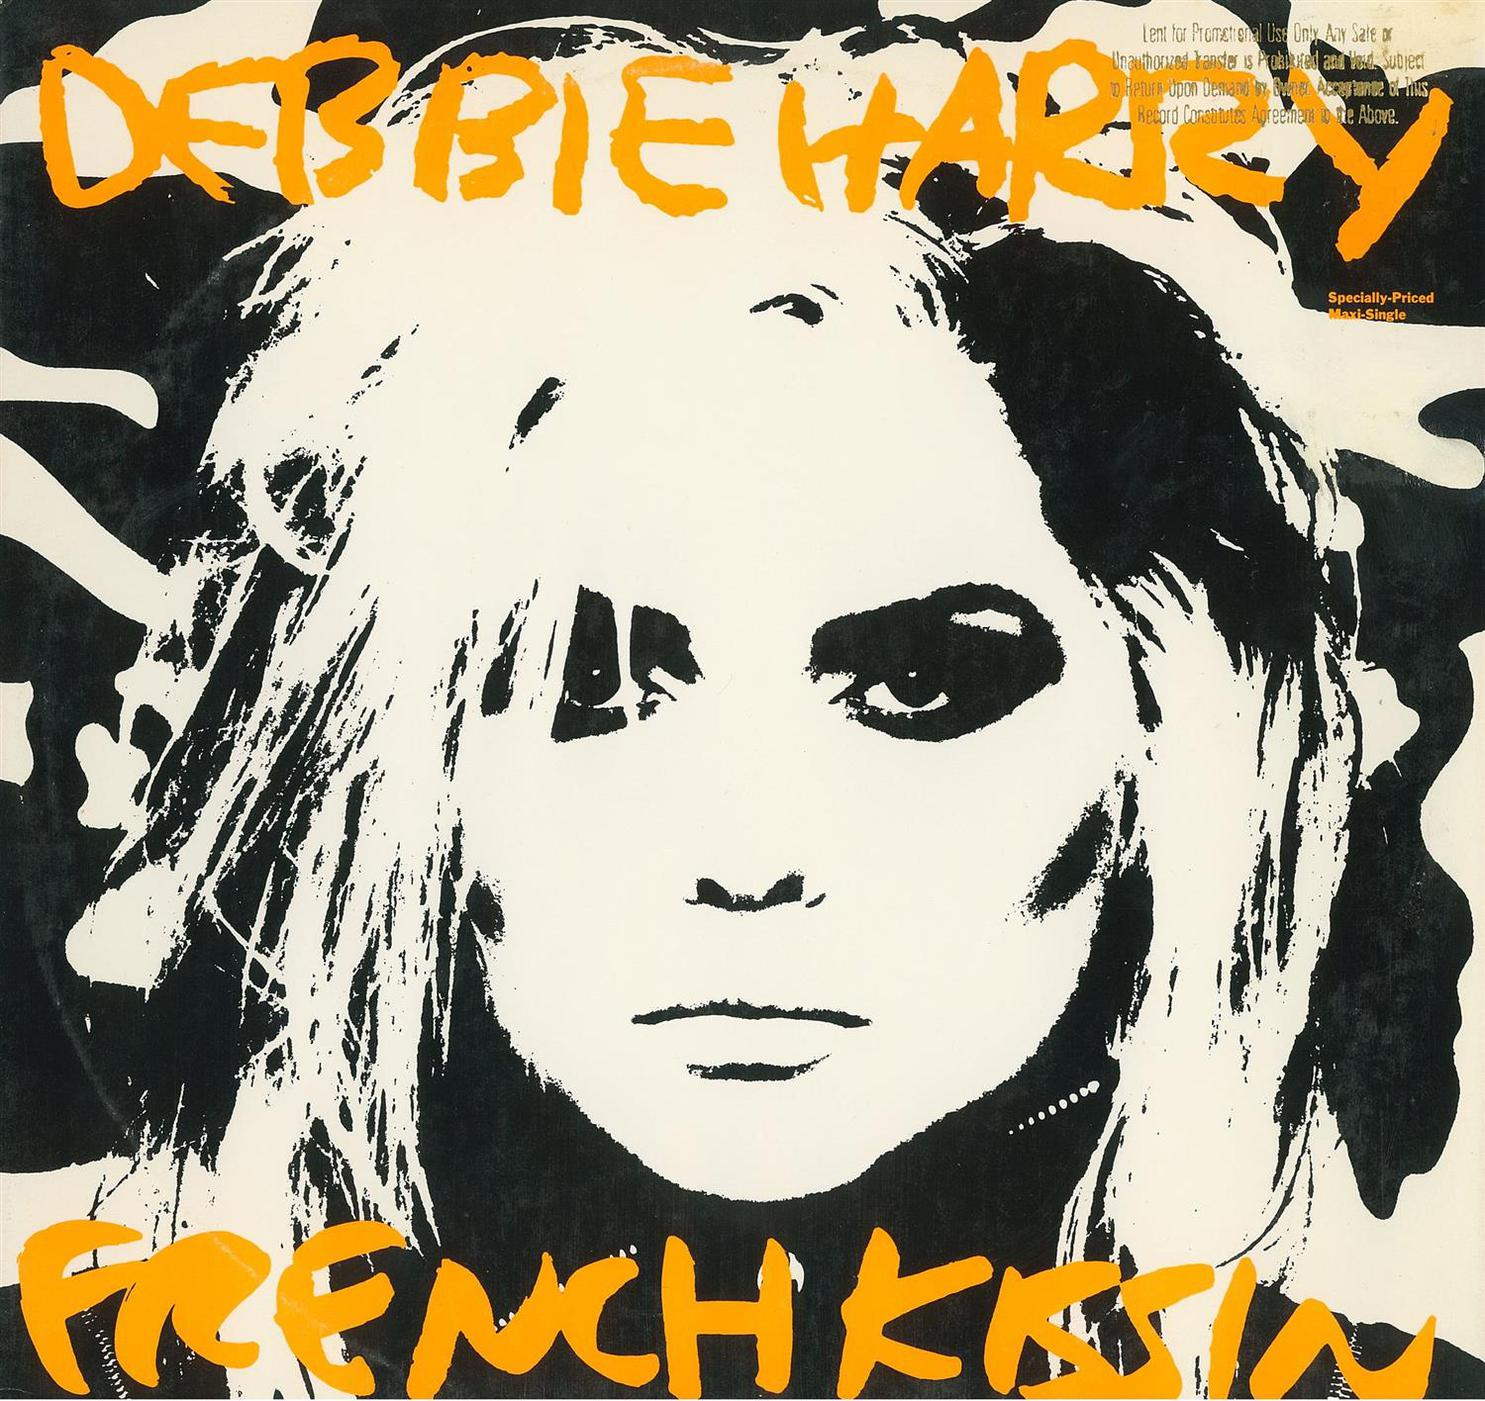 Andy Warhol-Debbie Harry (French Kissin)-1986